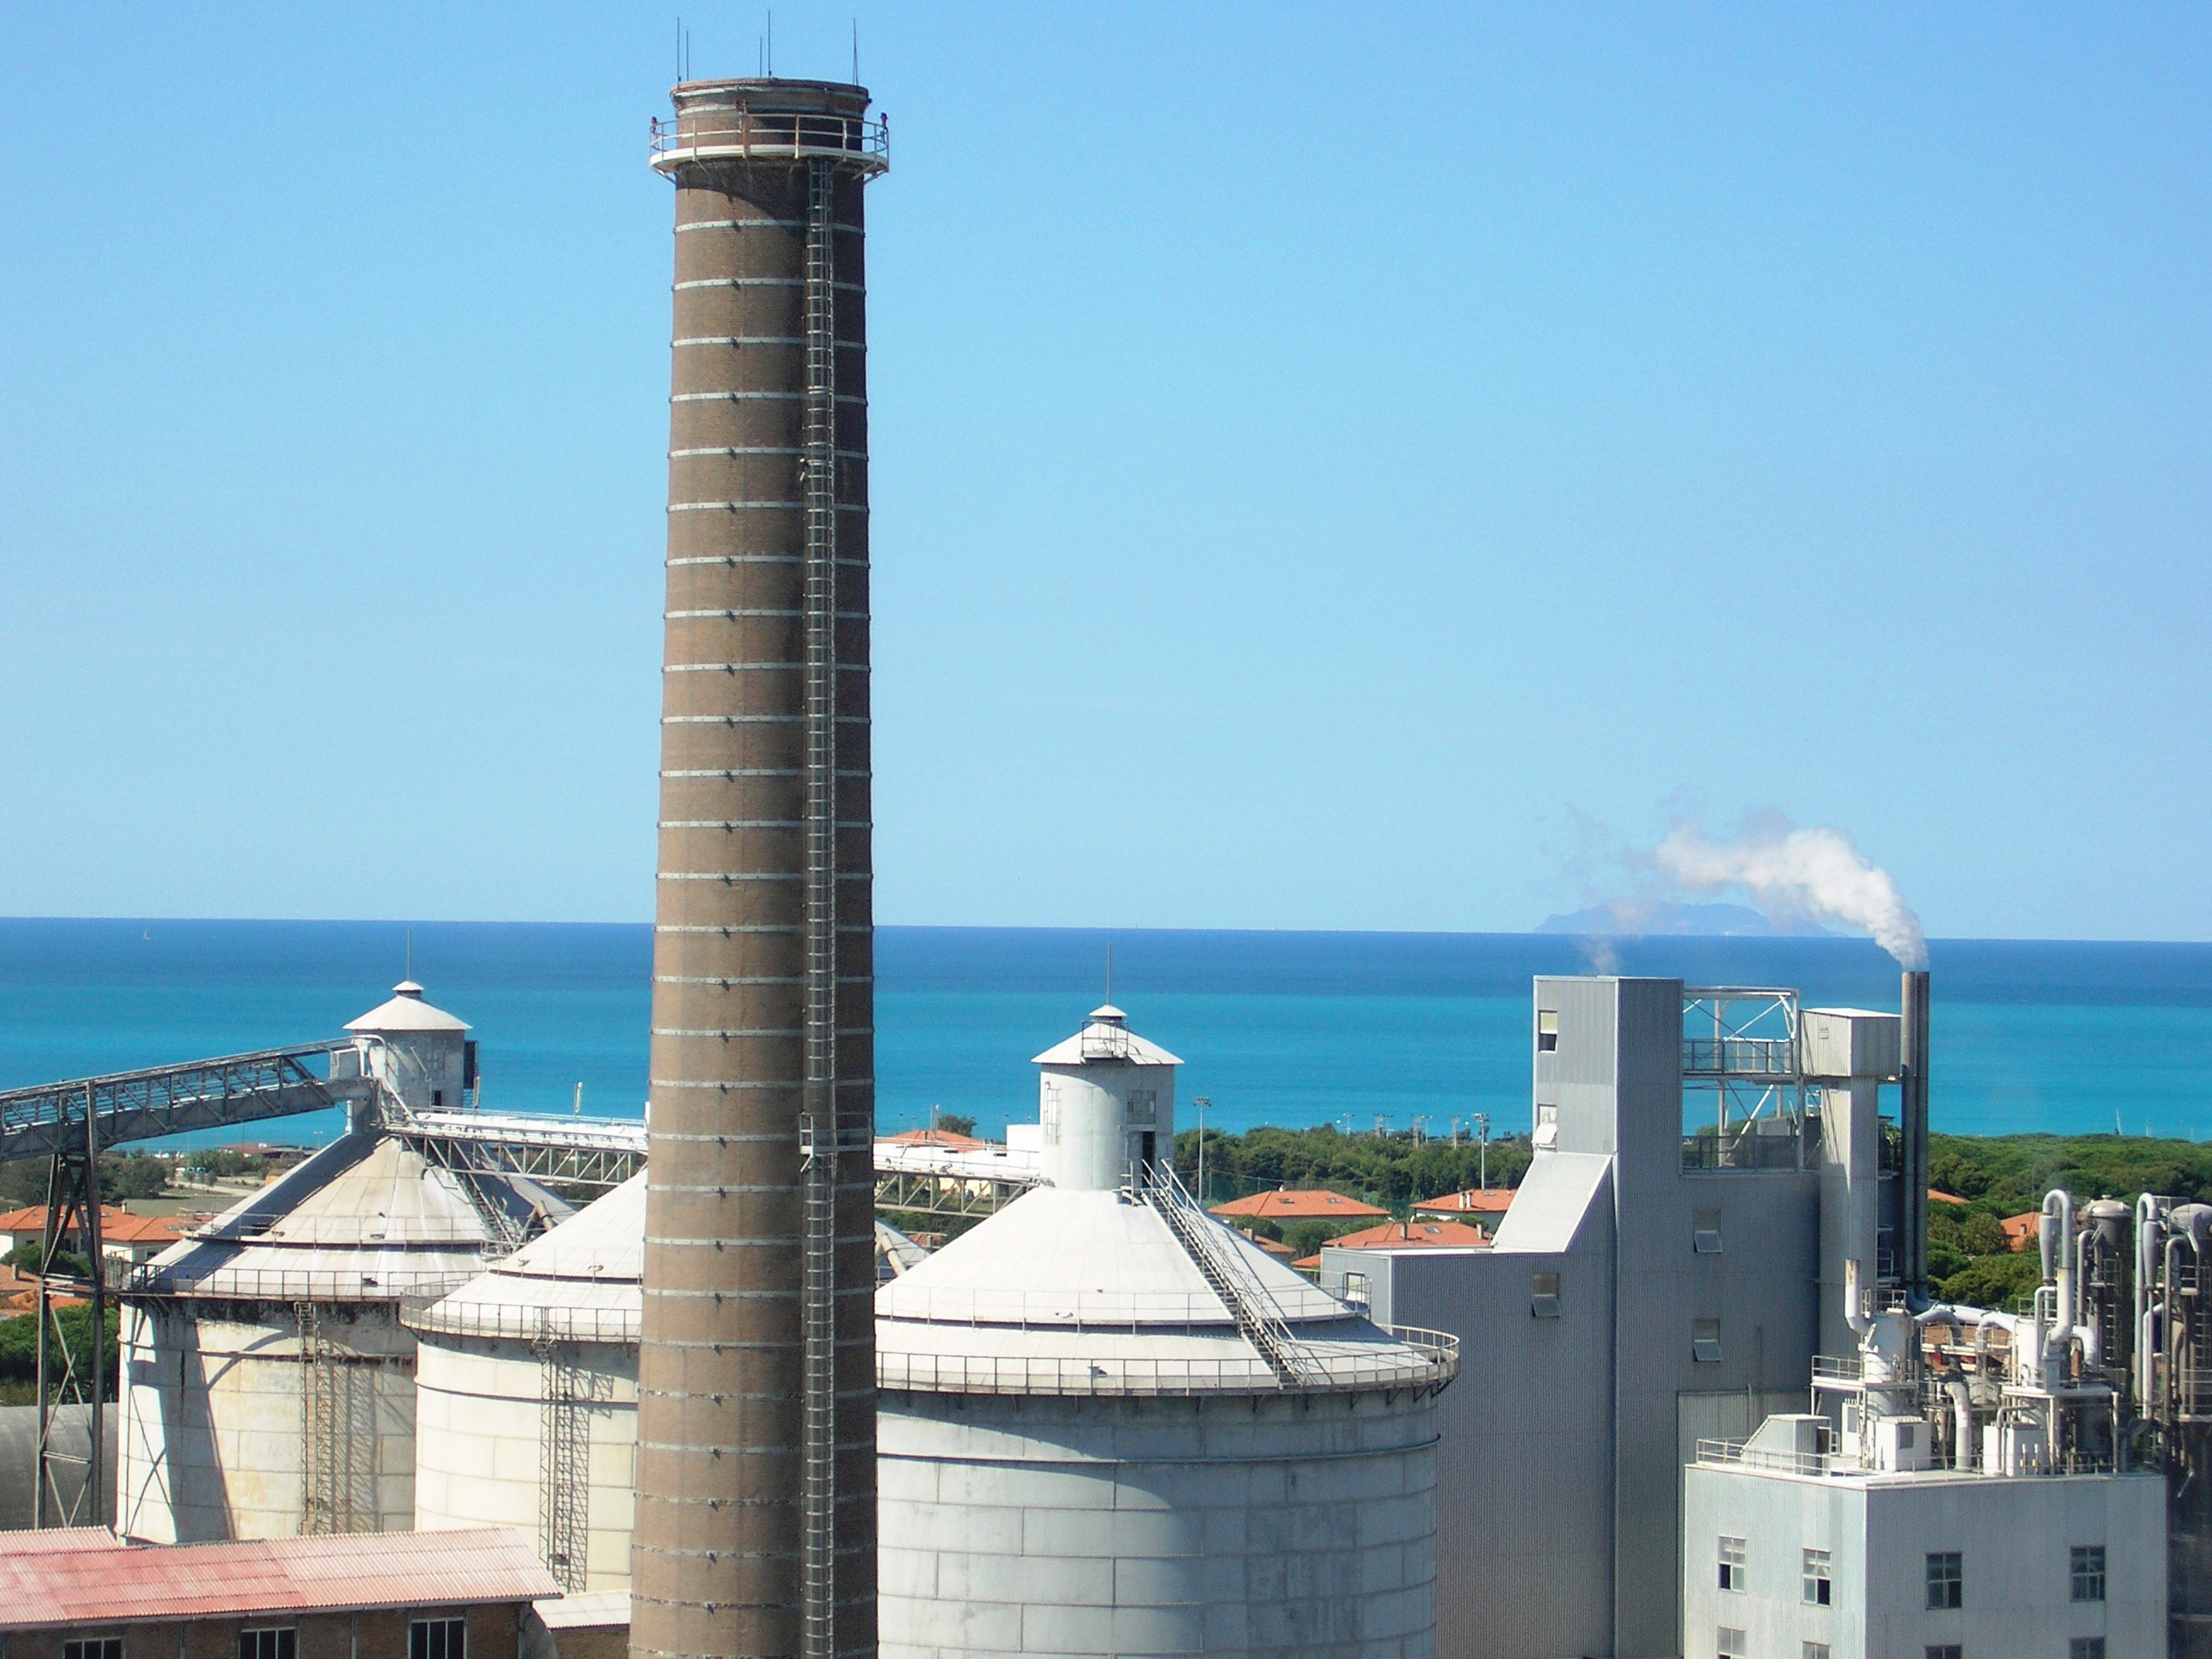 The Rosignano plant in Italy